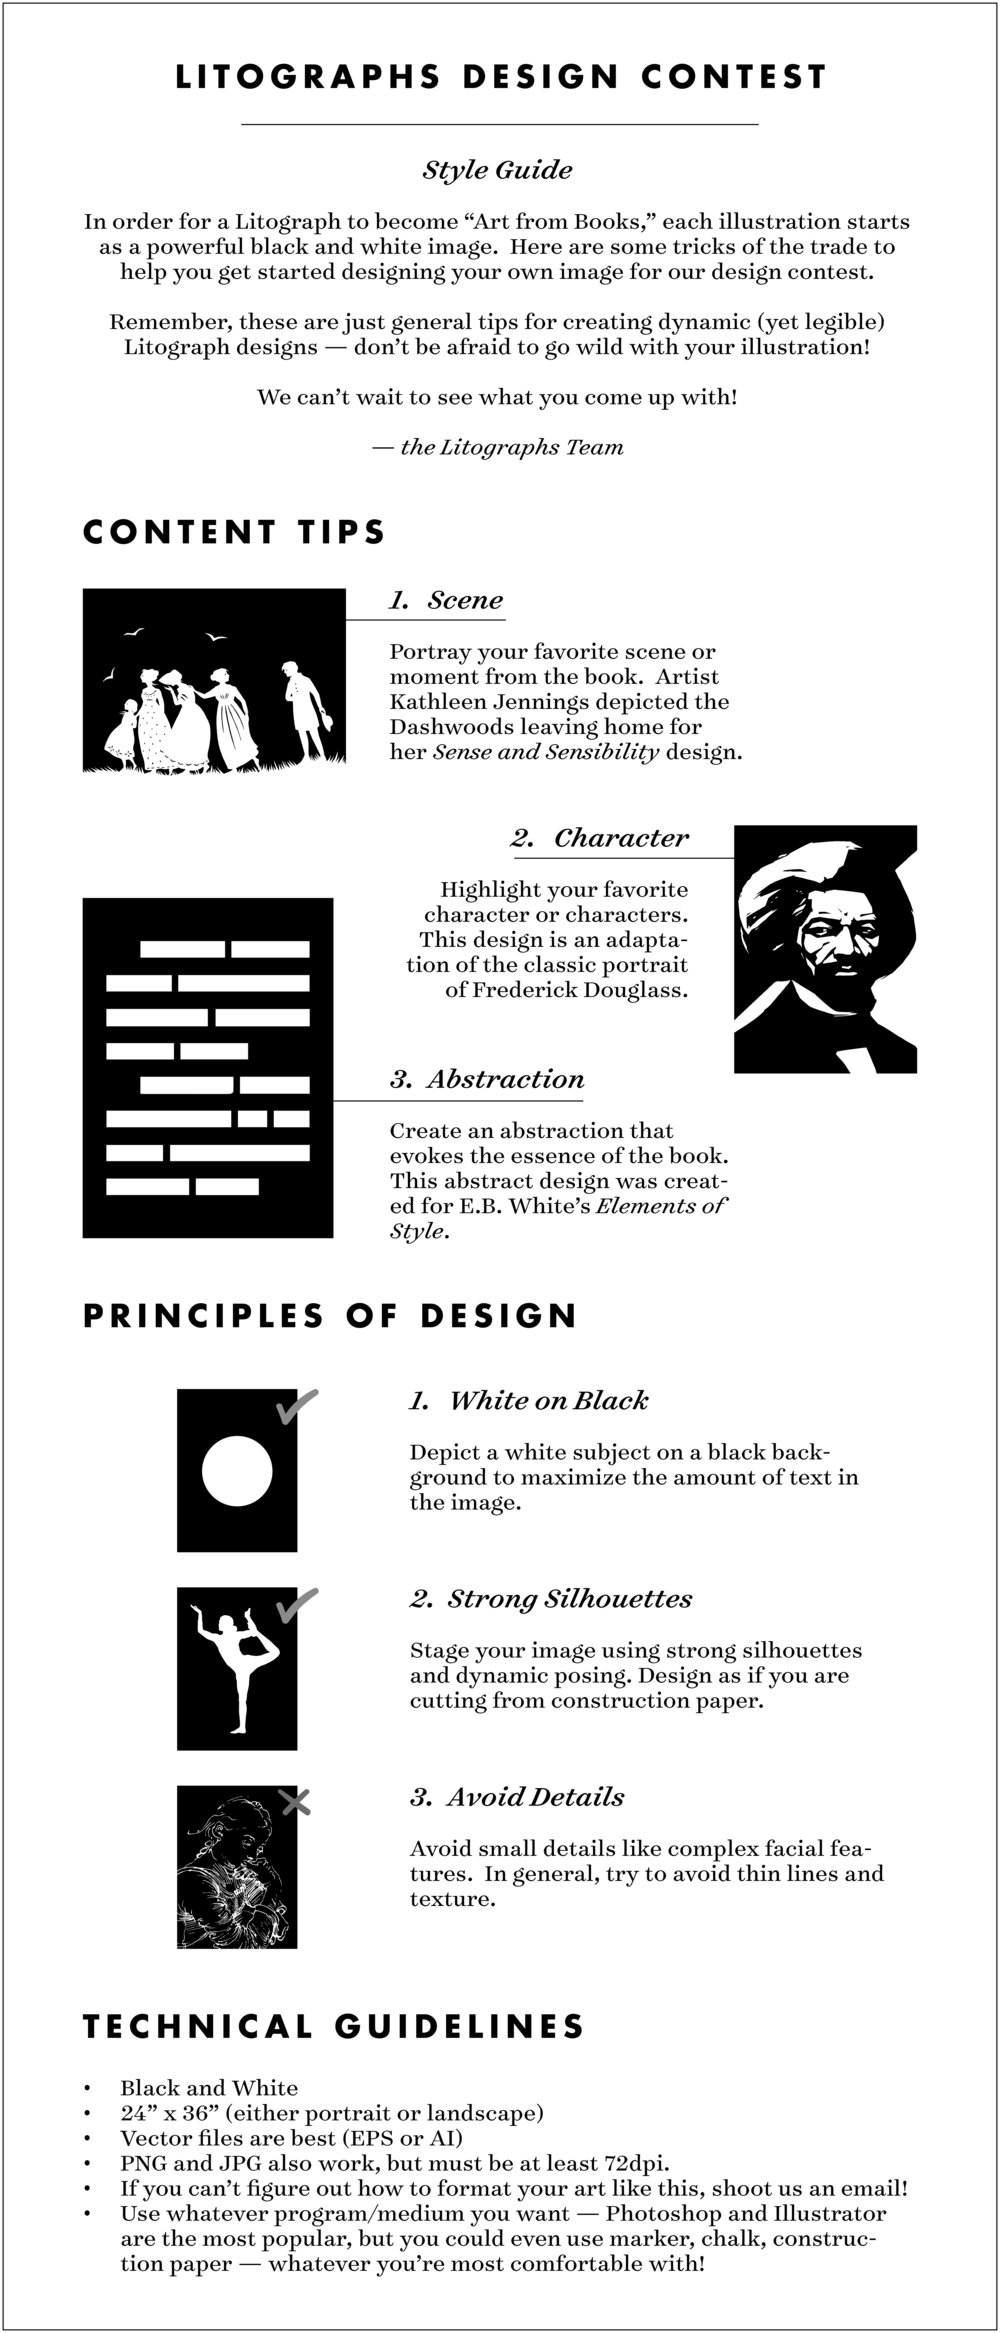 Litographs Design Contest Style Guide.jpg